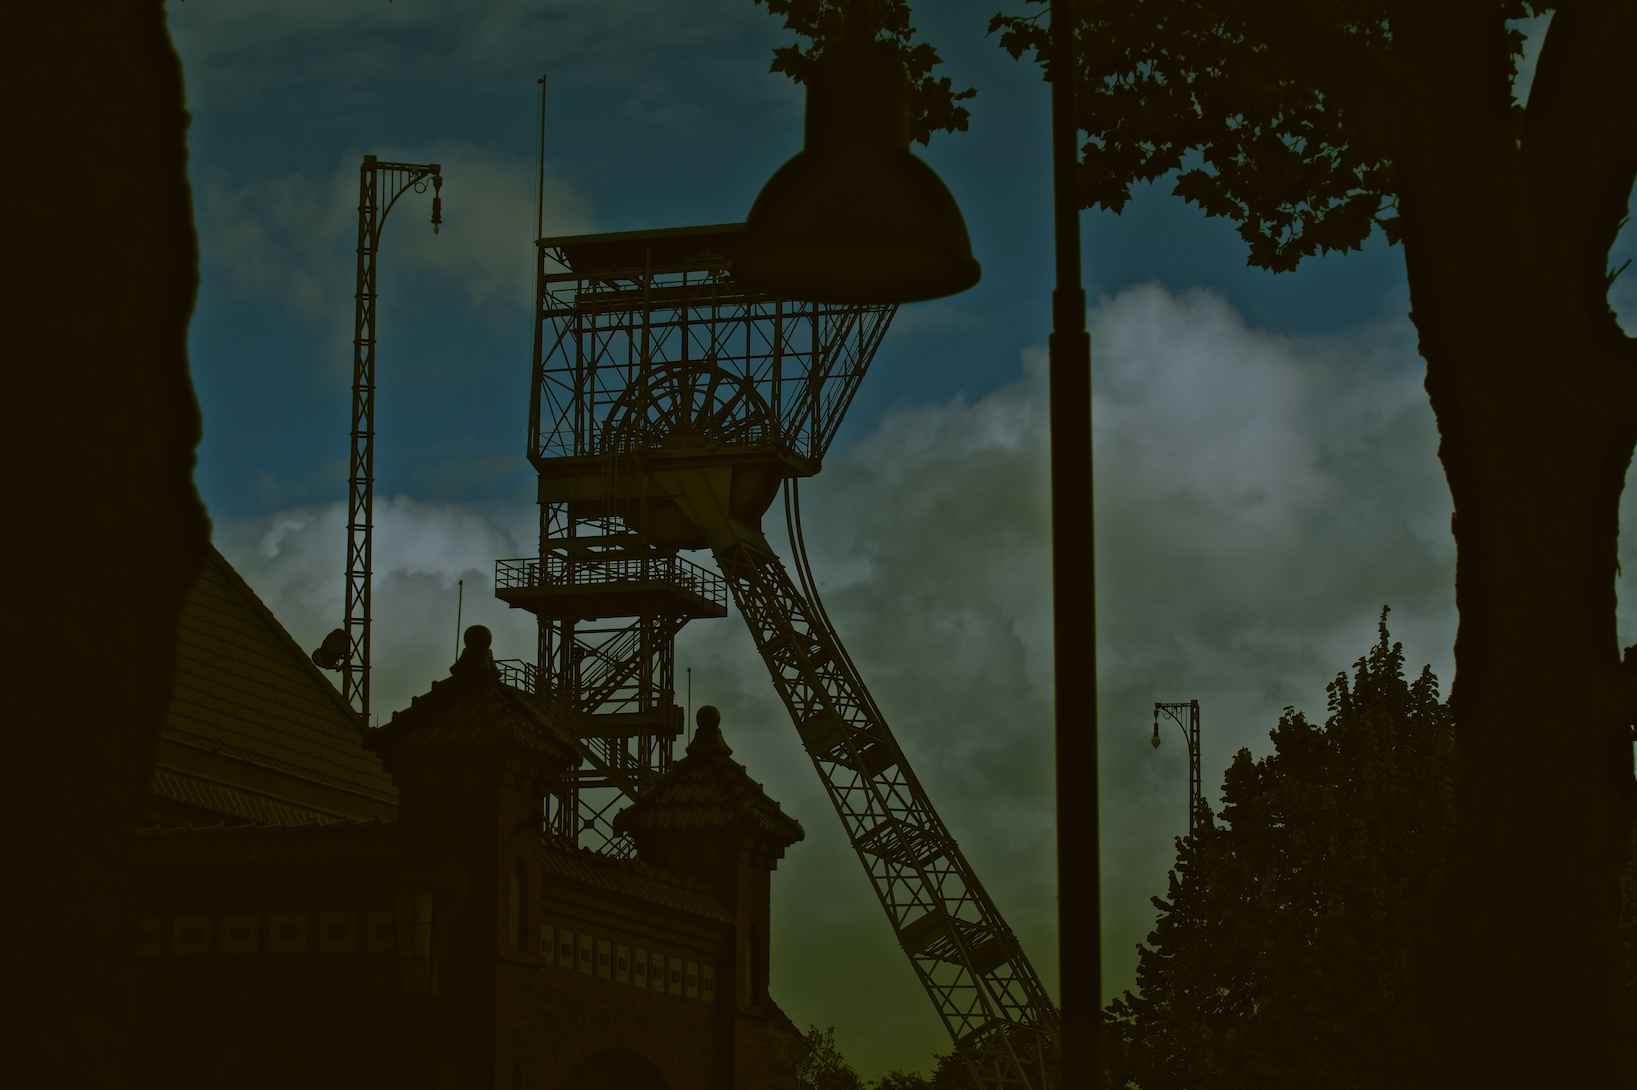 KLANGGARN & FIPS BACK FROM ZOLLVEREIN 03